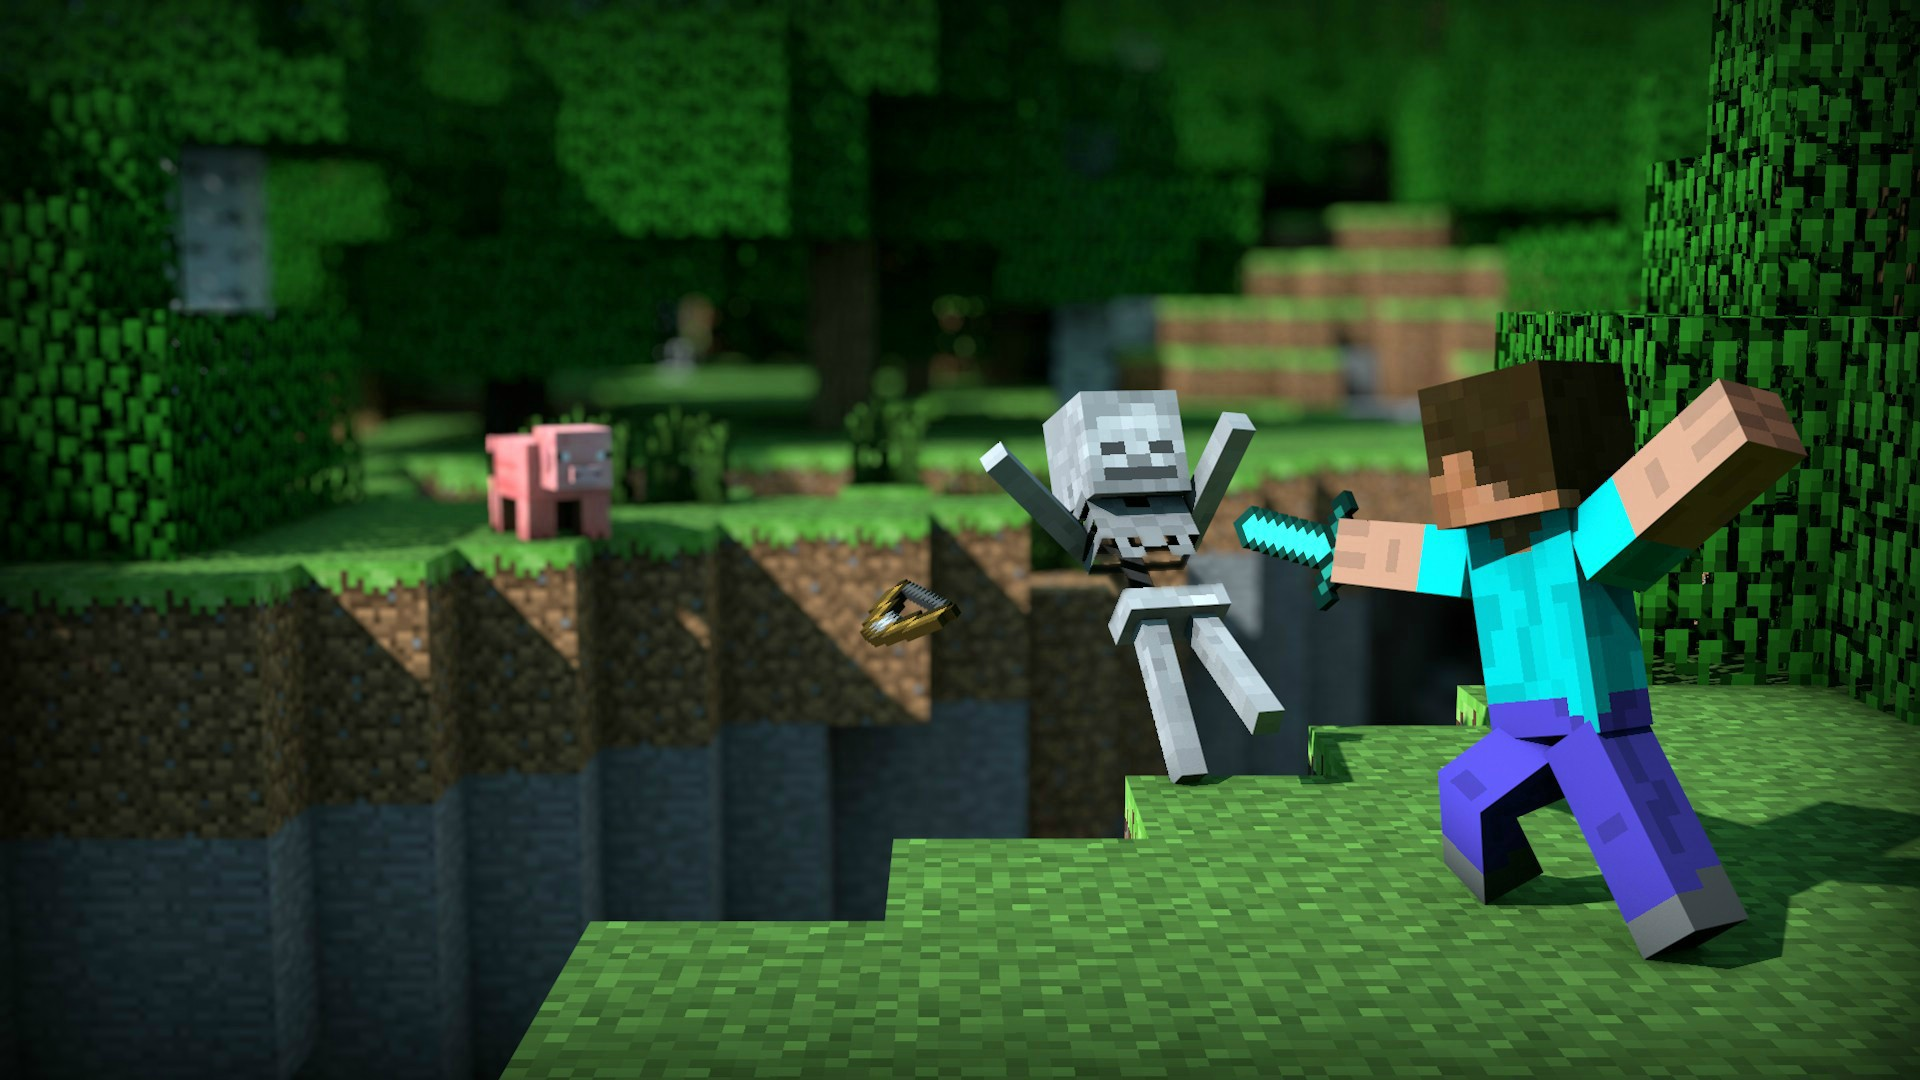 Pin One Of The Best Hd Minecraft Backgrounds Imgur 1920x1080